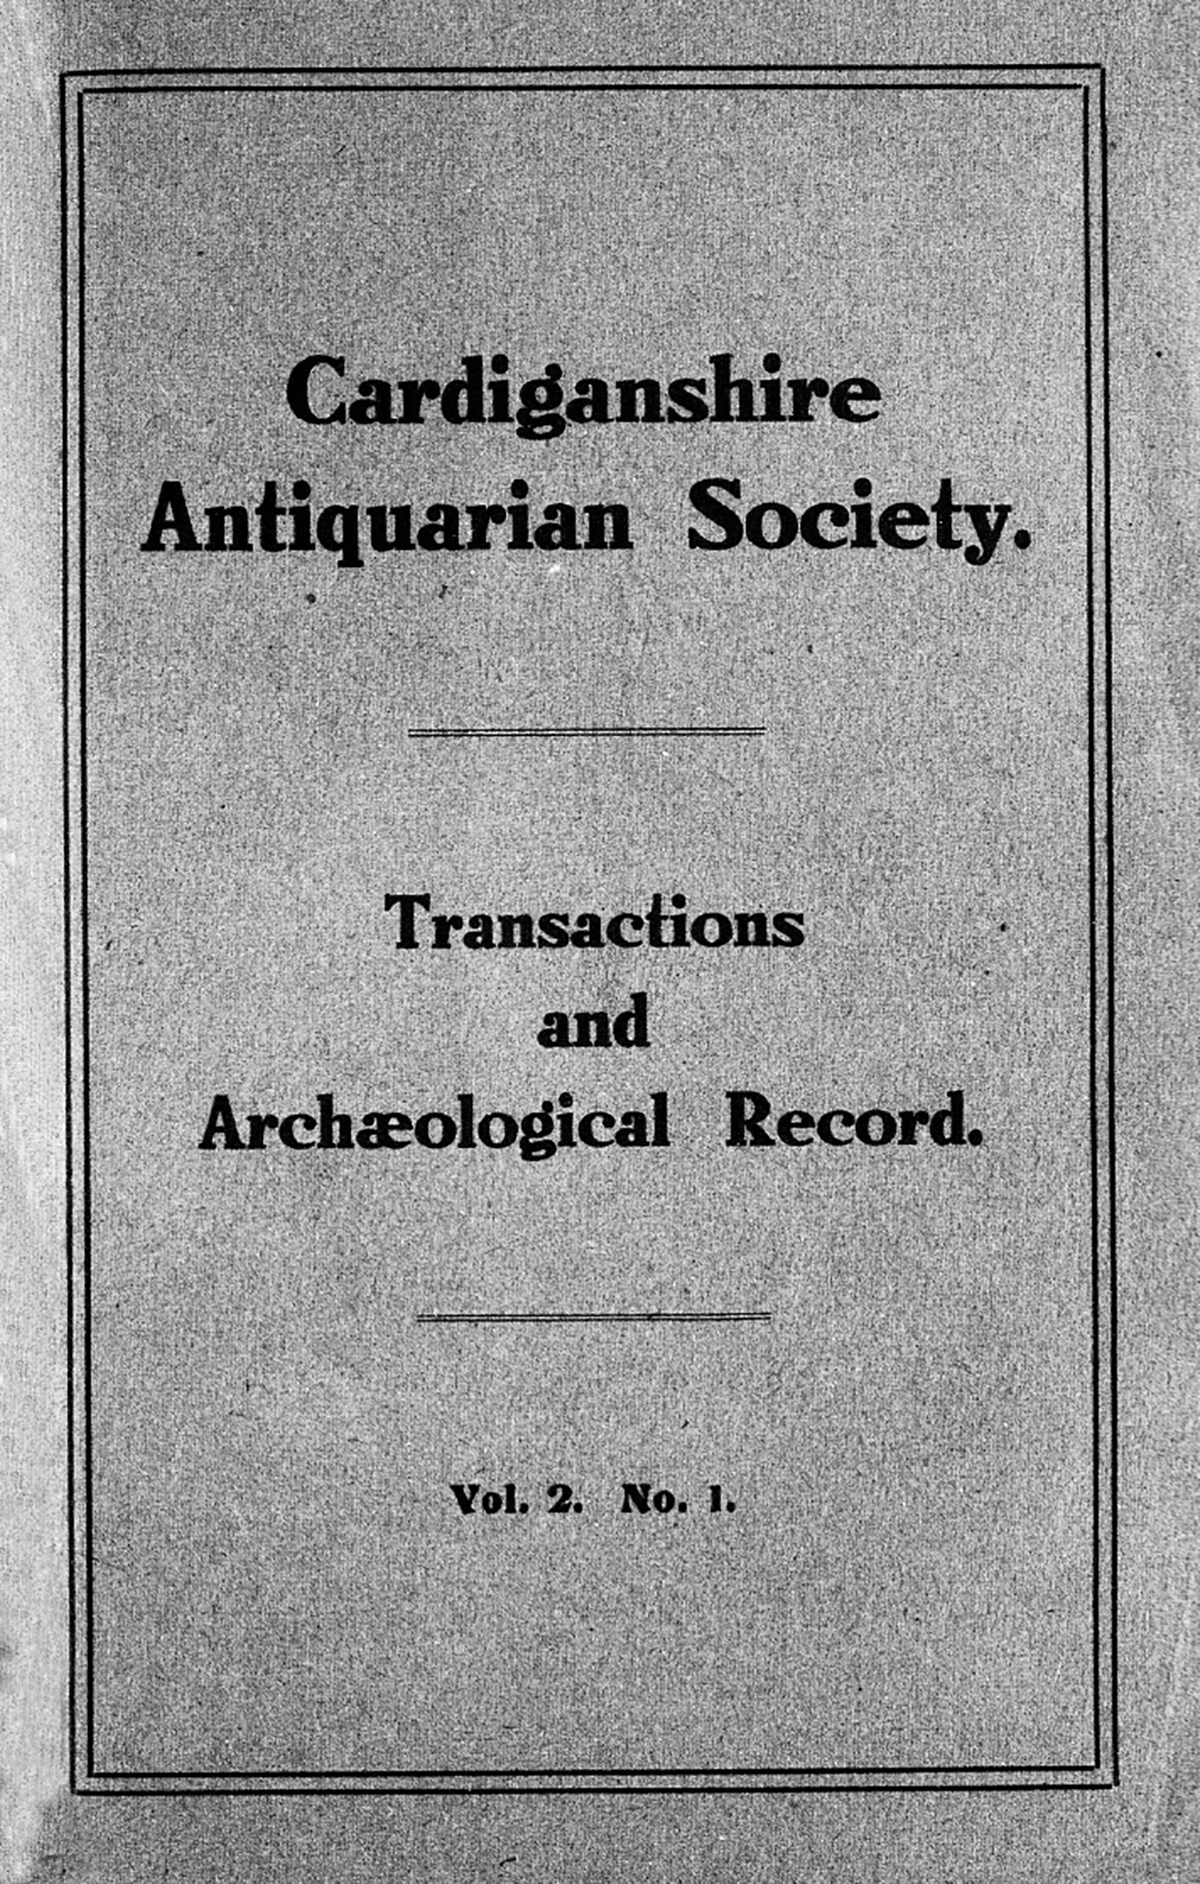 Transactions of the Cardiganshire Antiquarian Society and archaeological Record - Volume 2 No 1